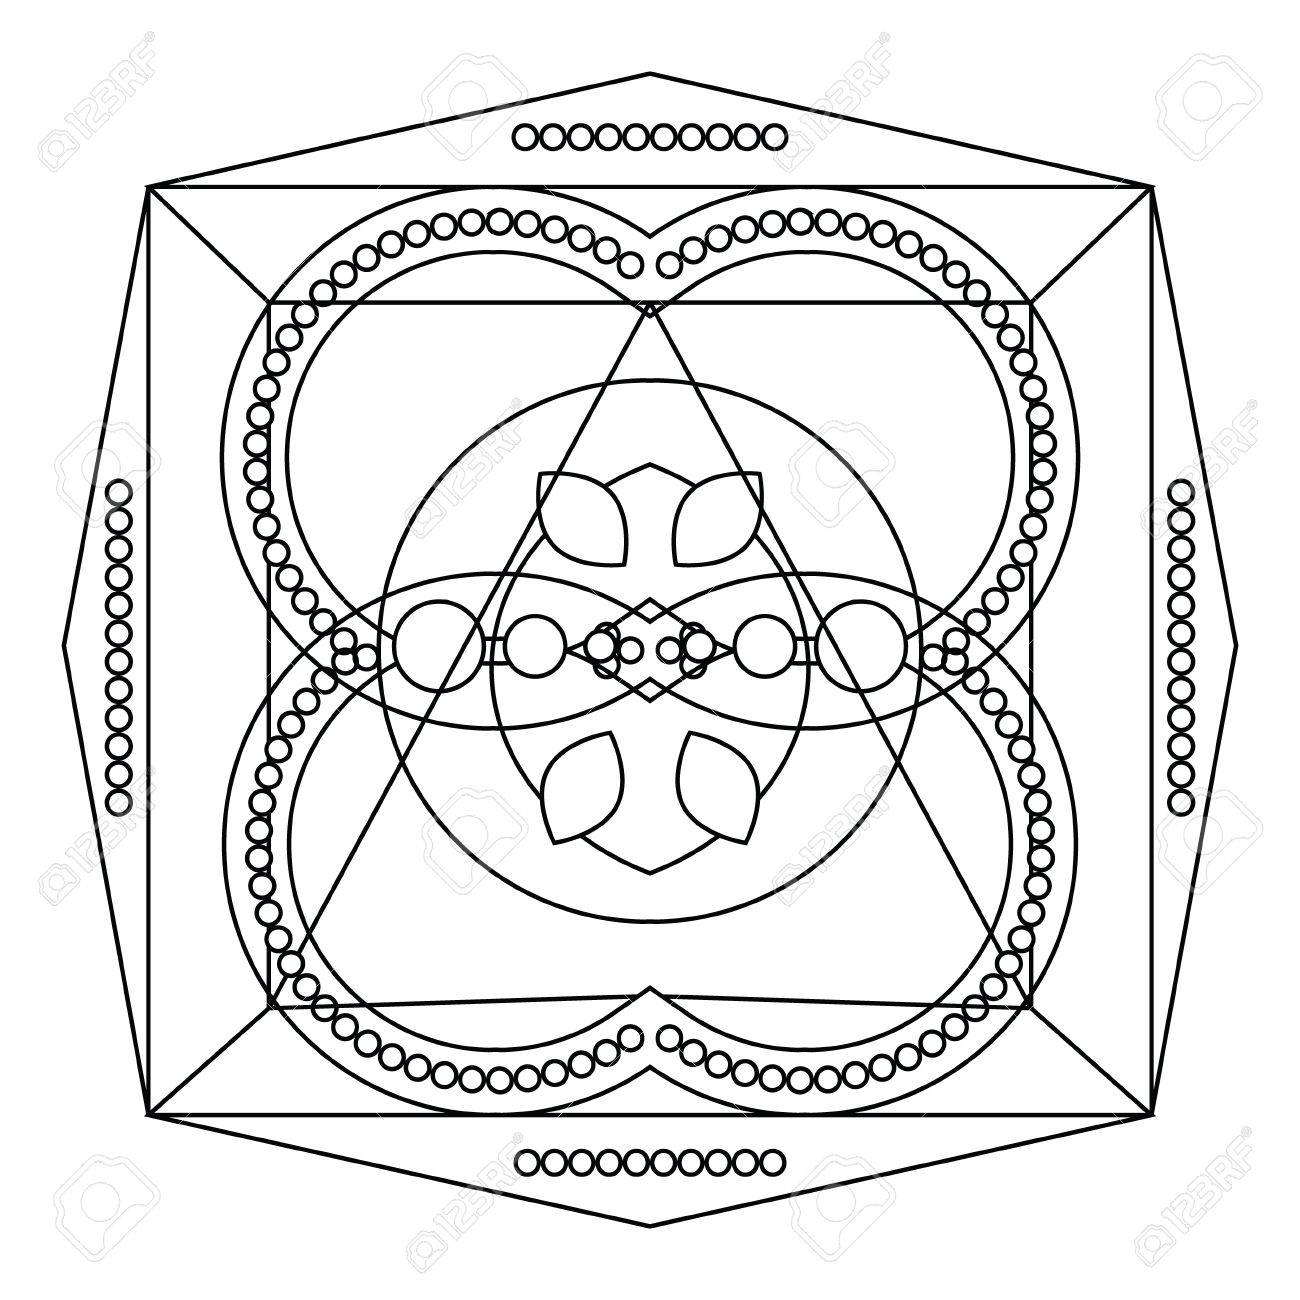 Relaxing Coloring Page With Vector Mandala For Kids And Adult Art Therapy Meditation